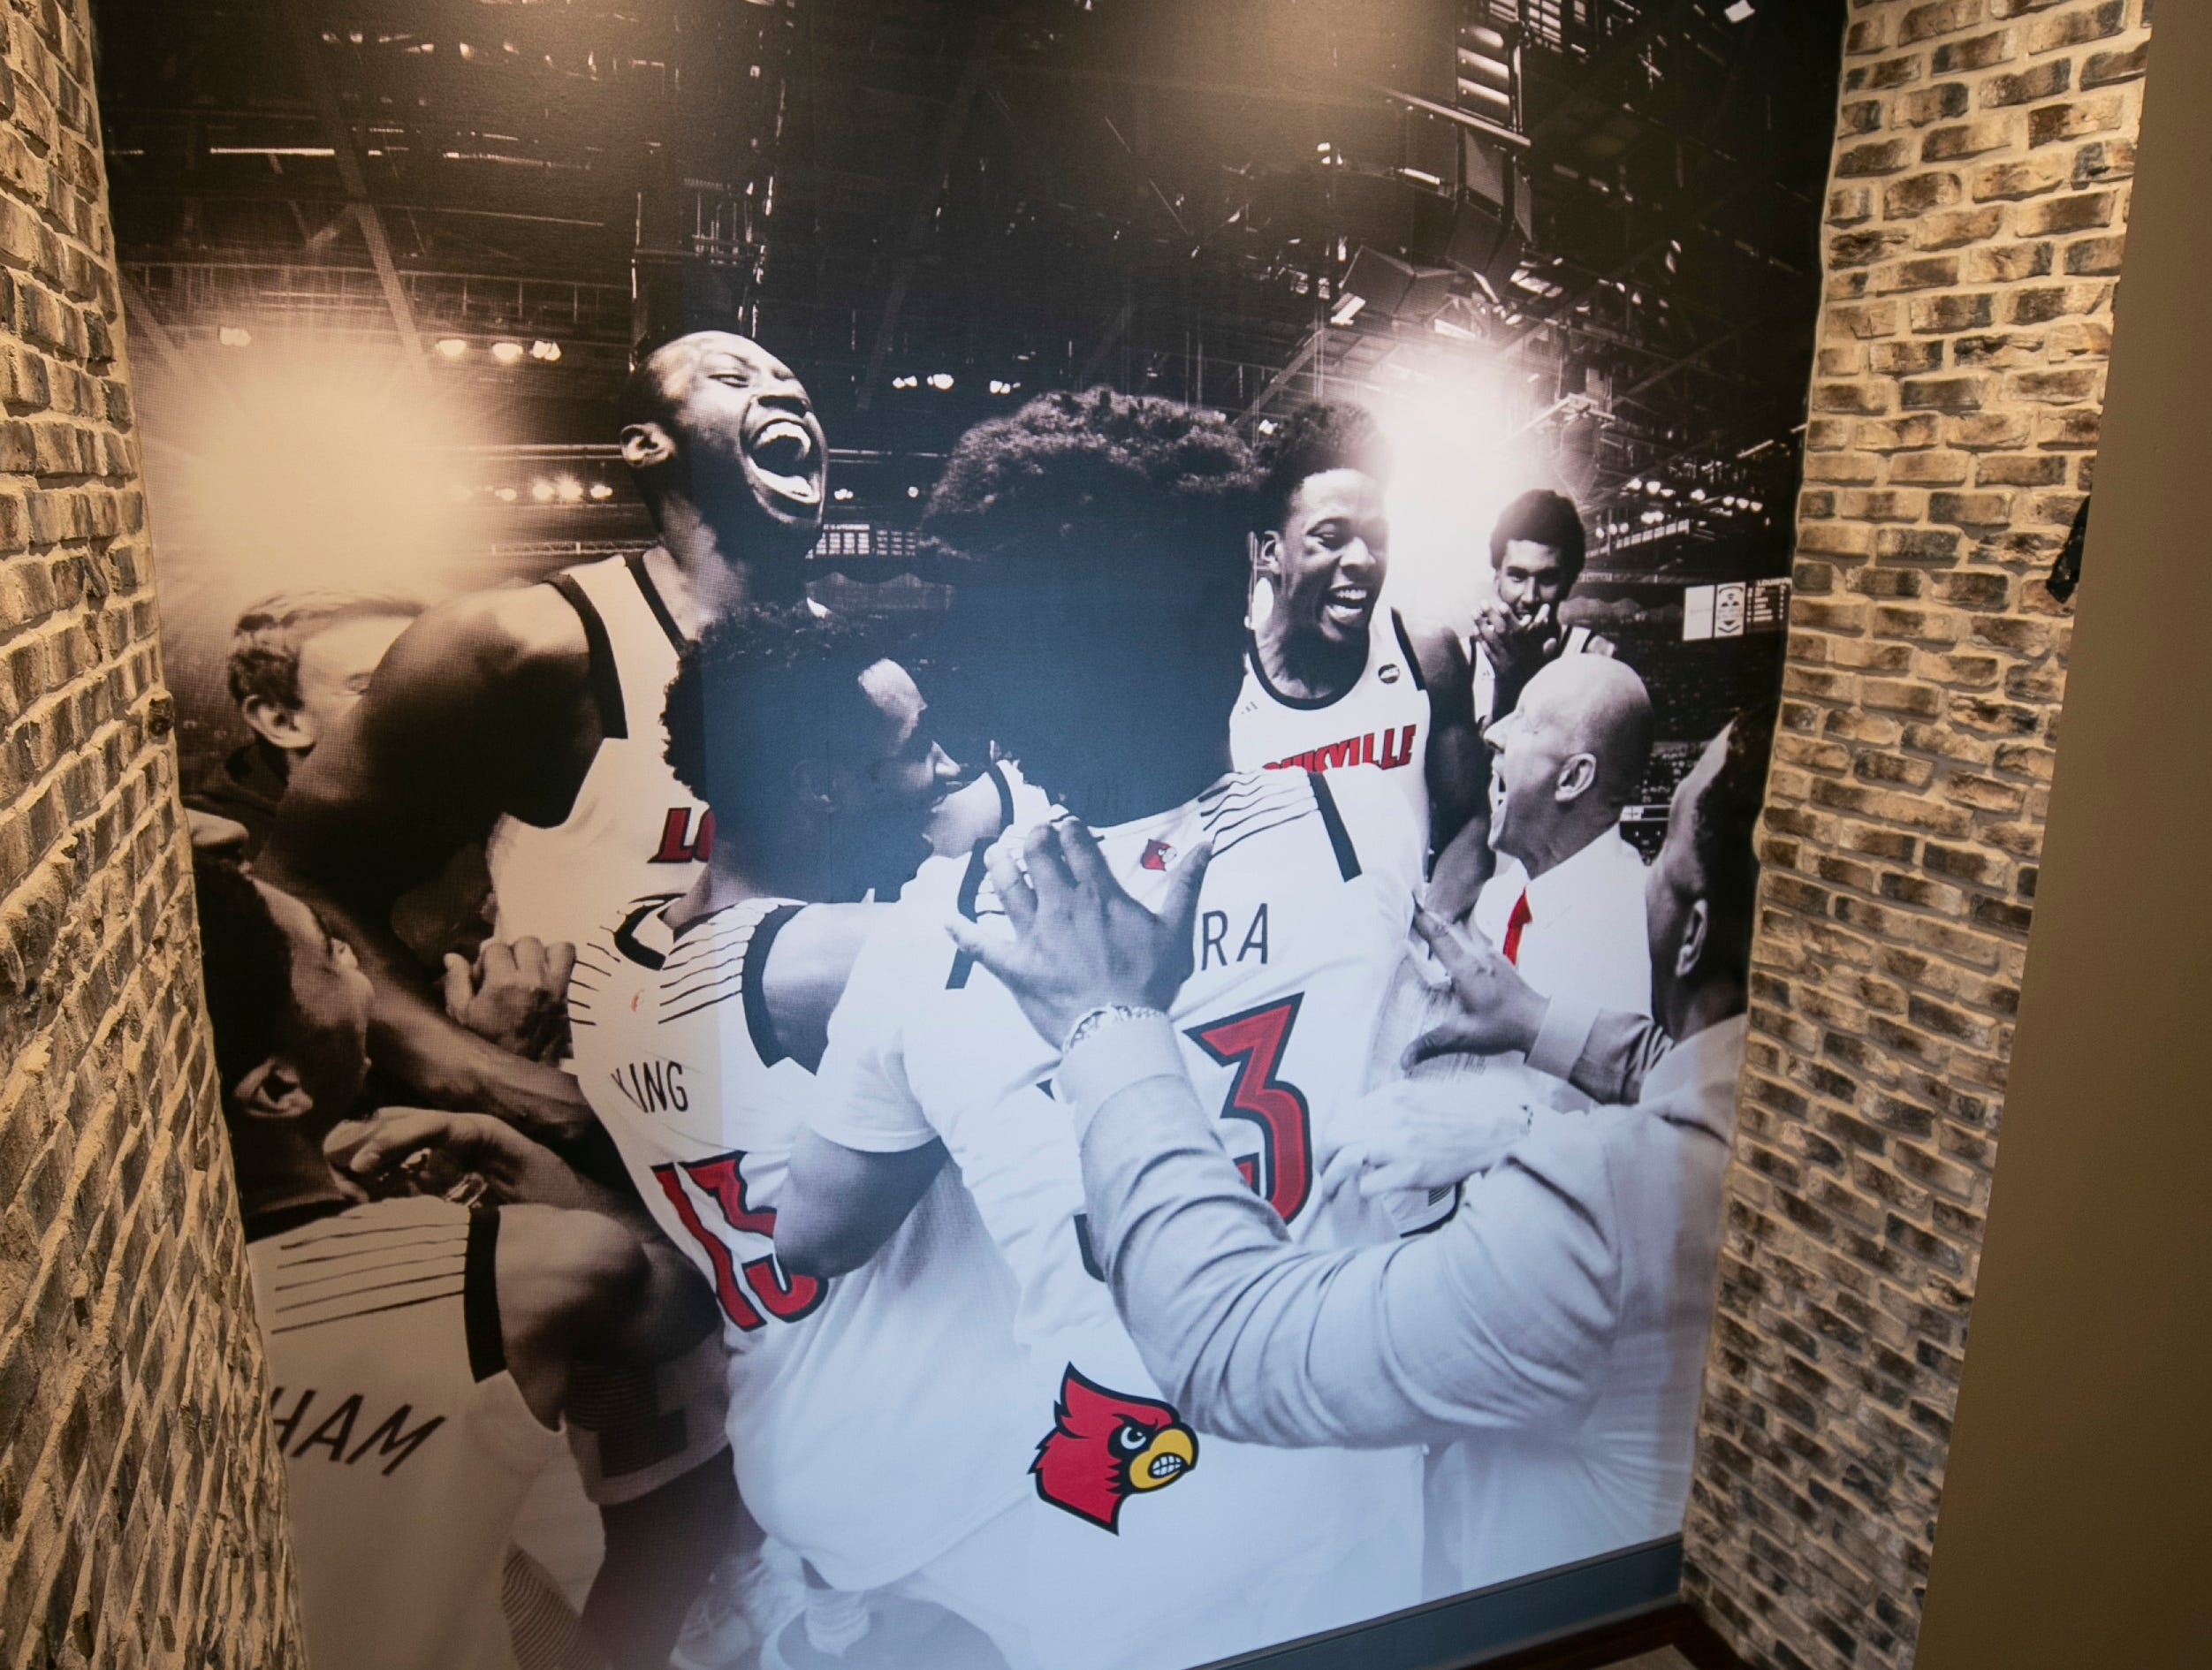 The stairs to the basement of the Mack home has homages to the Louisville basketball team, from a jubilation scene of Chris Mack with his players to a large L logo.